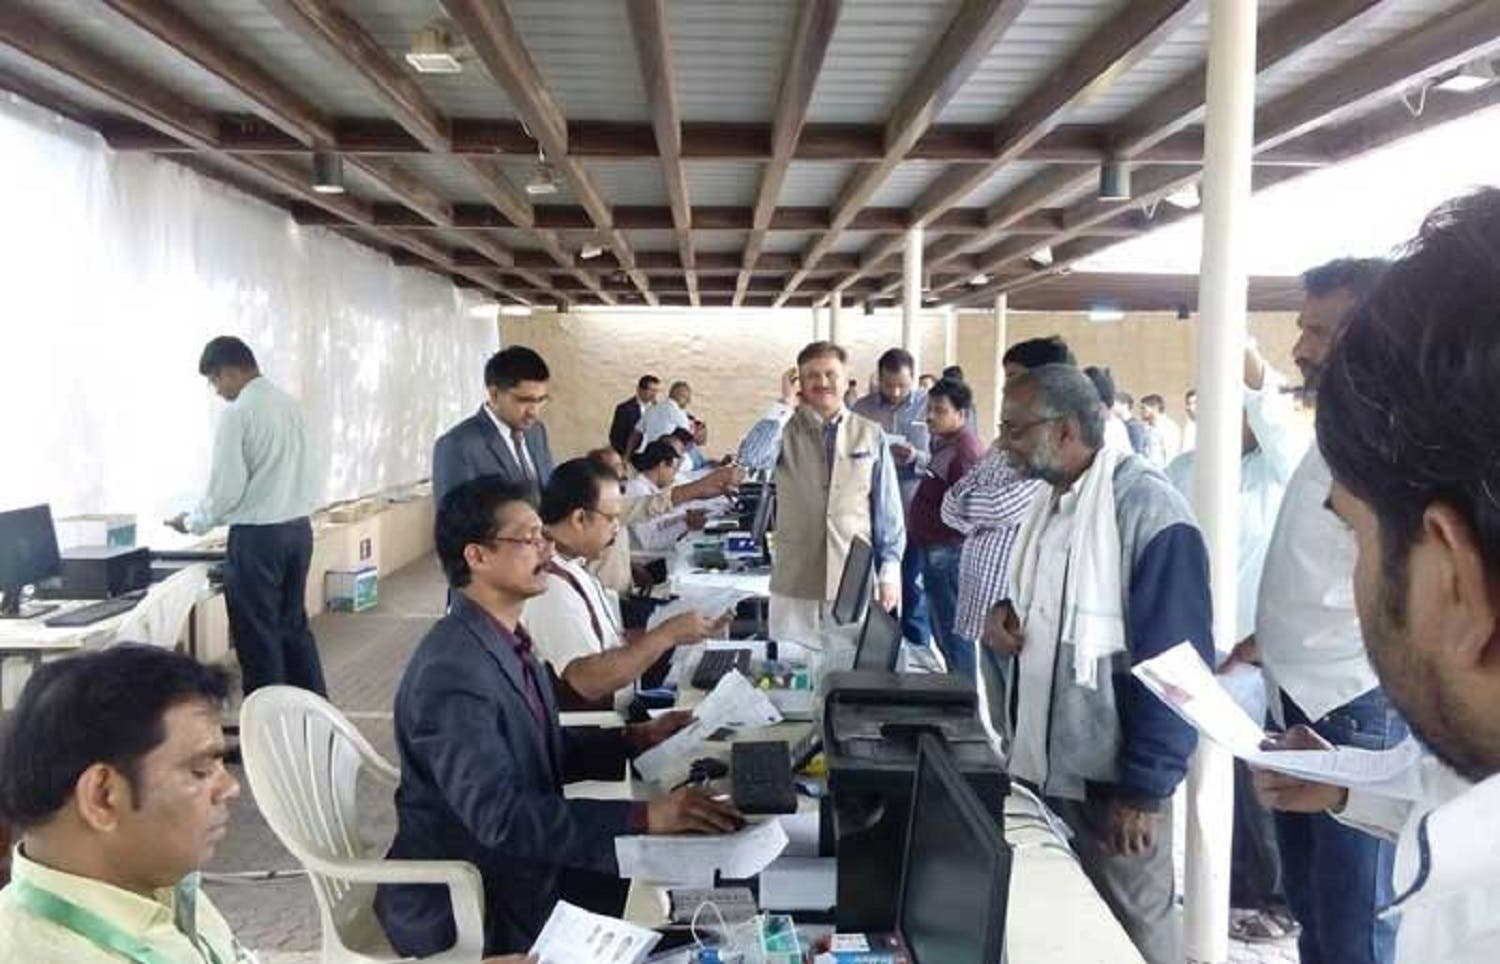 The authorities have made elaborate arrangements to cope with the rush and assist applicants. (Saudi Gazette)